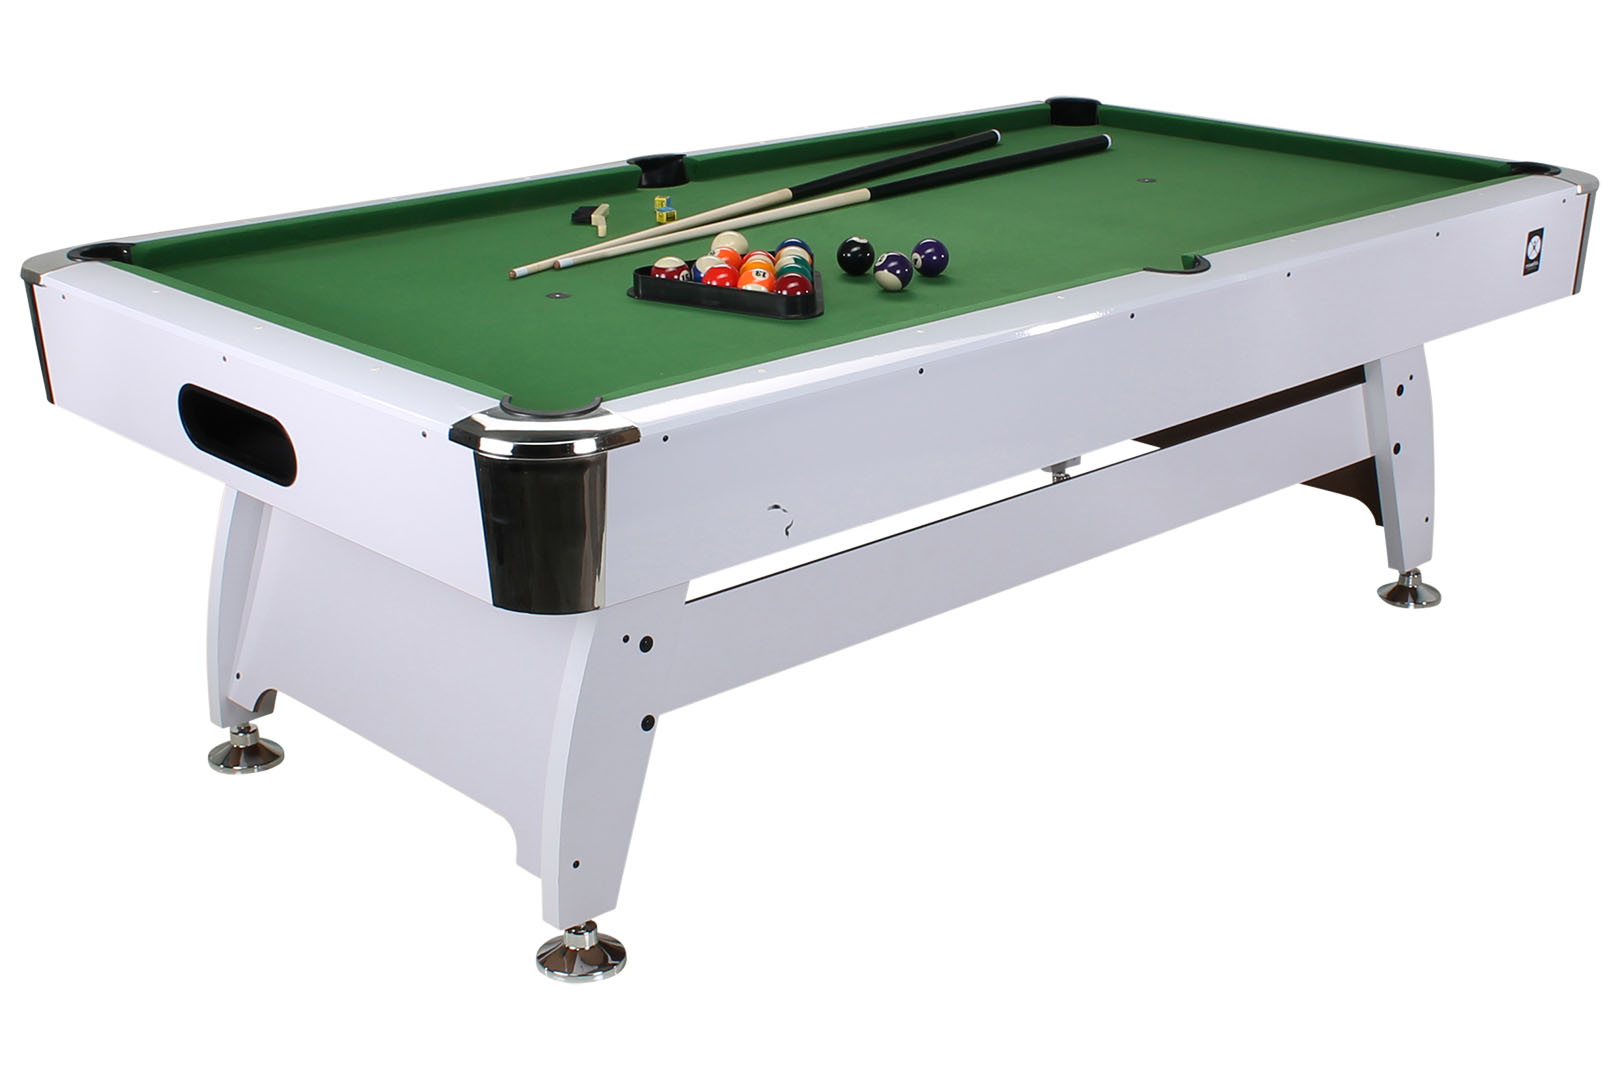 Miweba pool table 7 ft billard billiardtisch snooker pool for 10 foot pool table